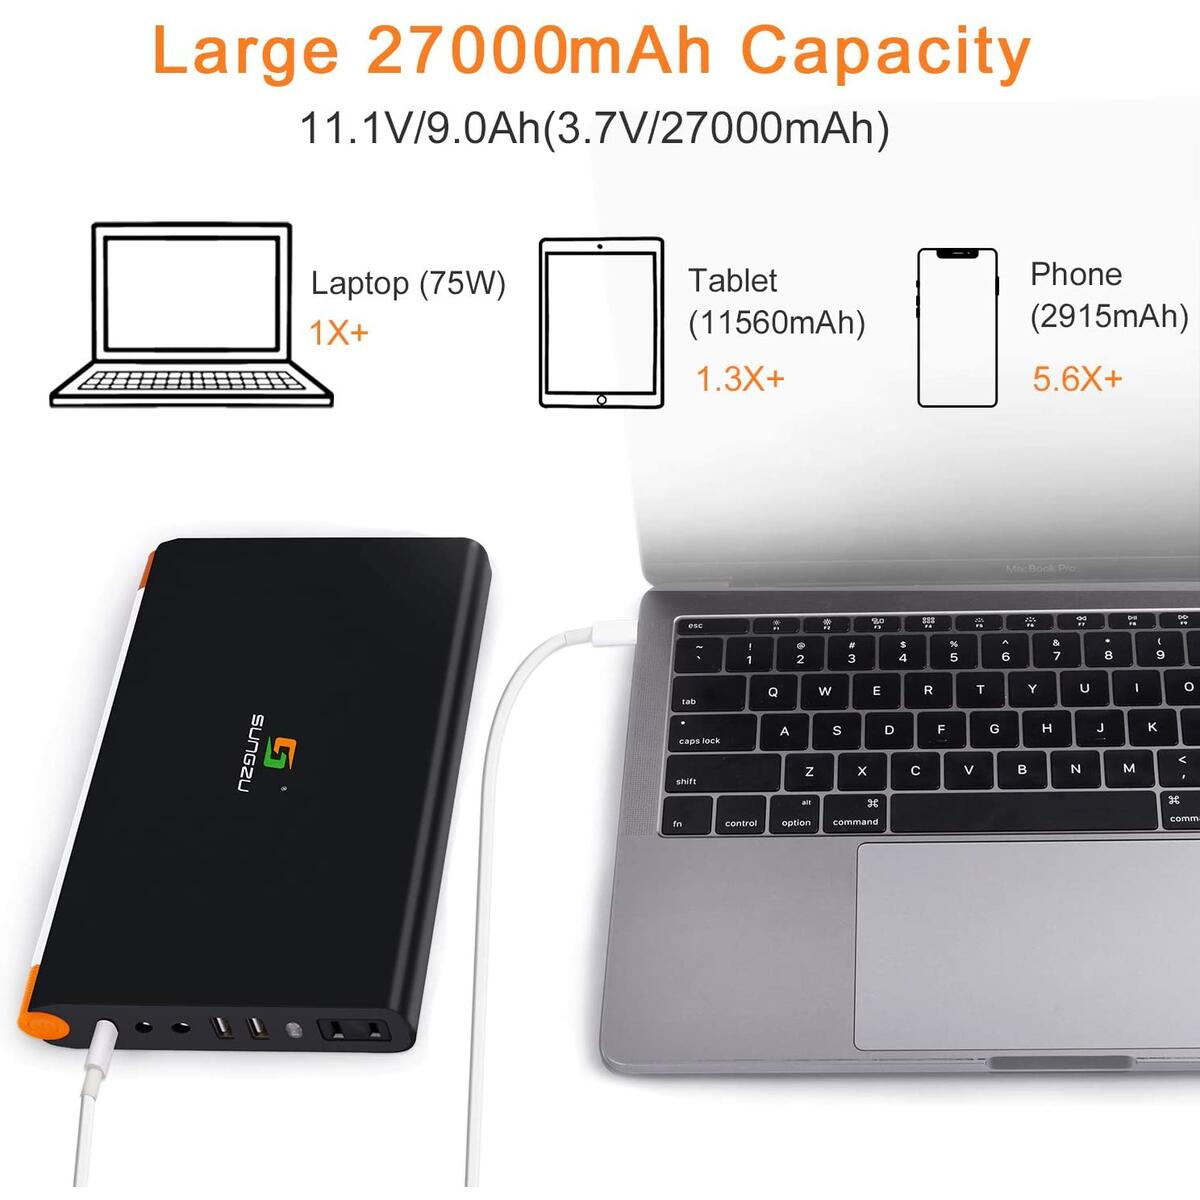 SUNGZU Portable Laptop Charger 27000mAh/99.9Wh AC Outlet Laptop Power Bank with 45W Type-C PD External Battery Travel Charger for MacBook, Surface Pro, HP, Dell, Nintendo Switch, iPad, Drone, Phone